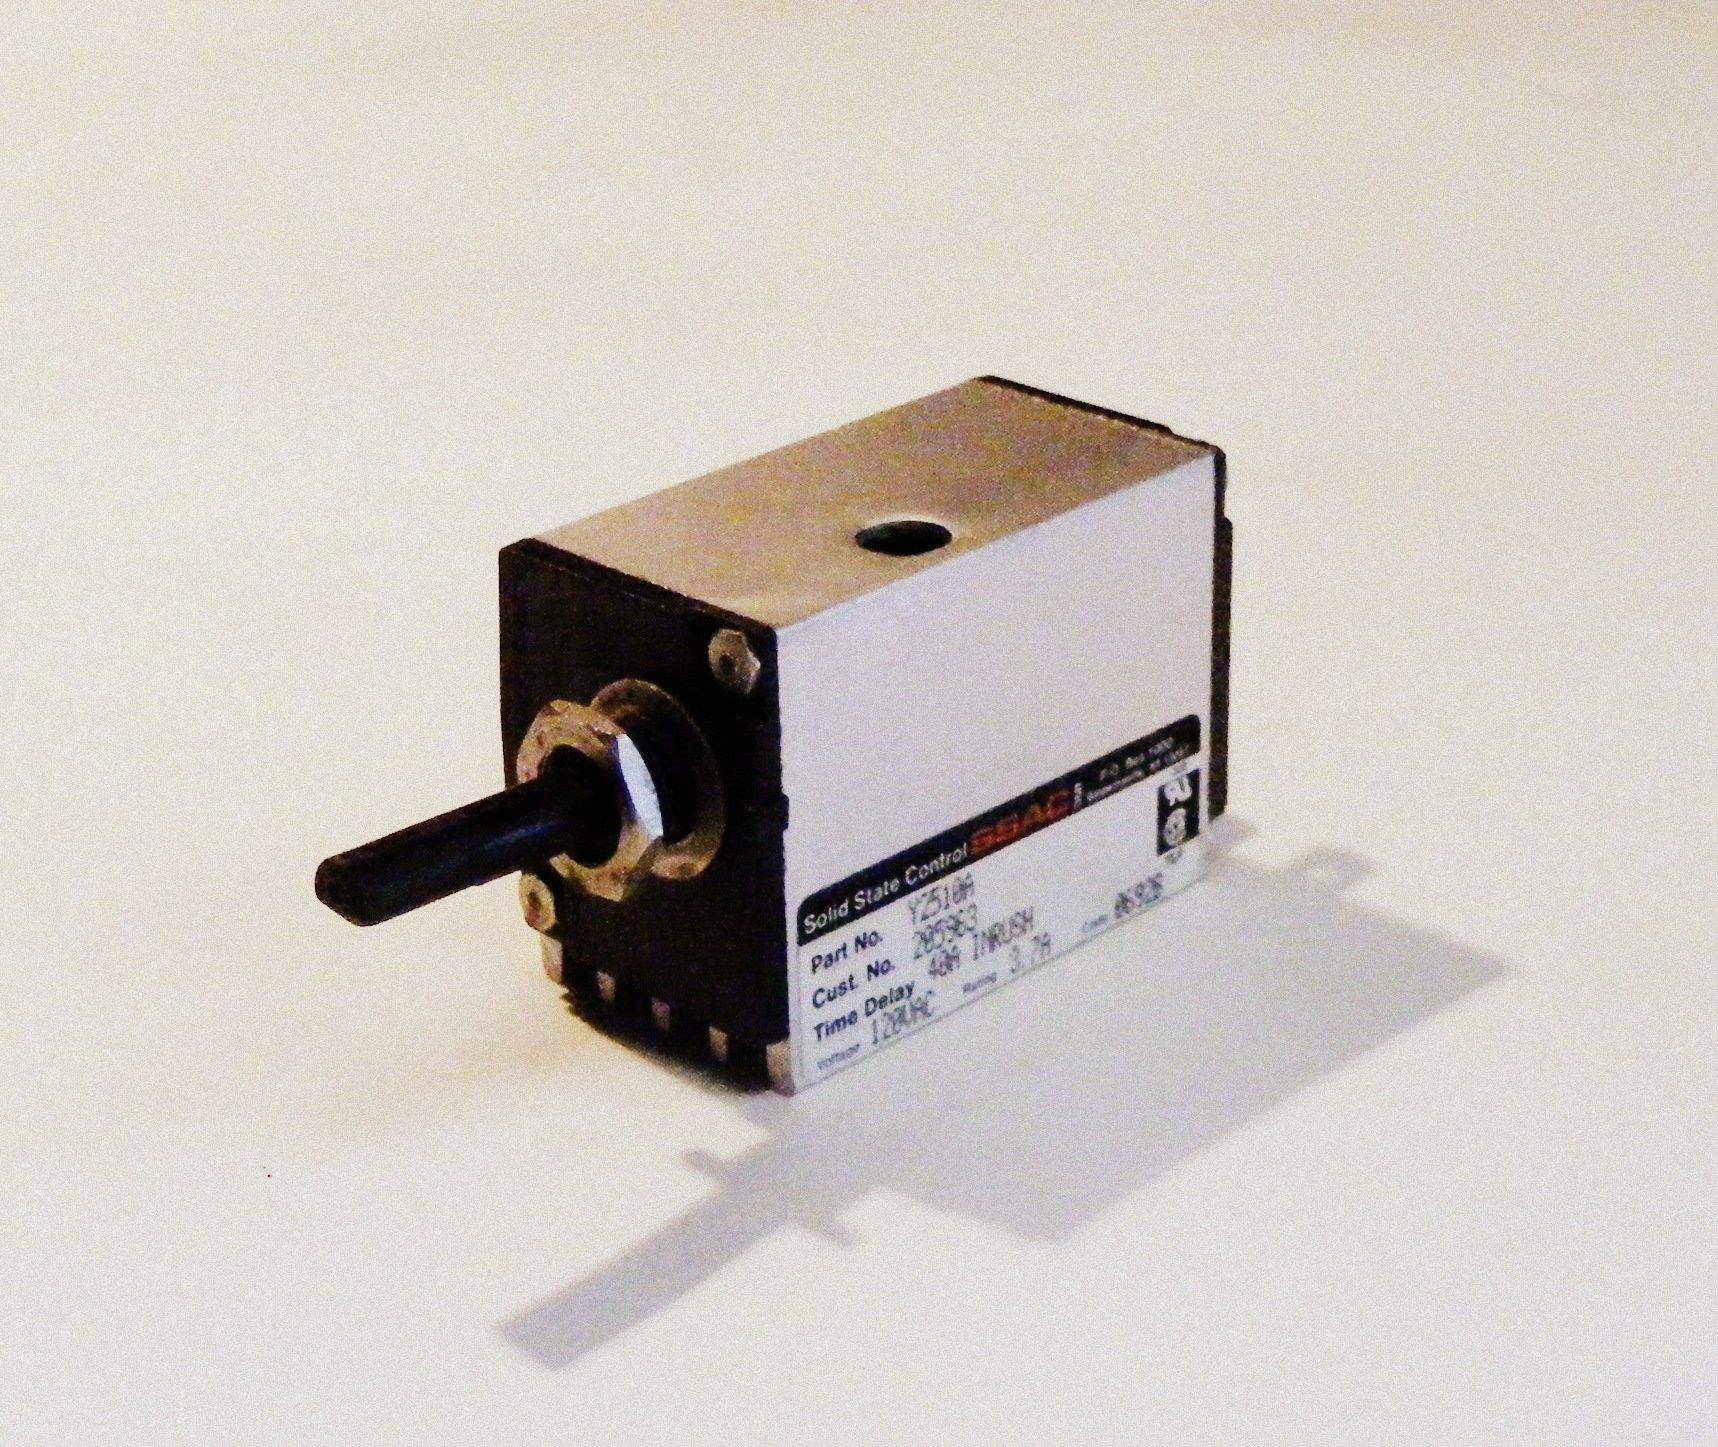 Y2510A 205963 Jenn Air CM200 Range Fan Motor Rotary Switch